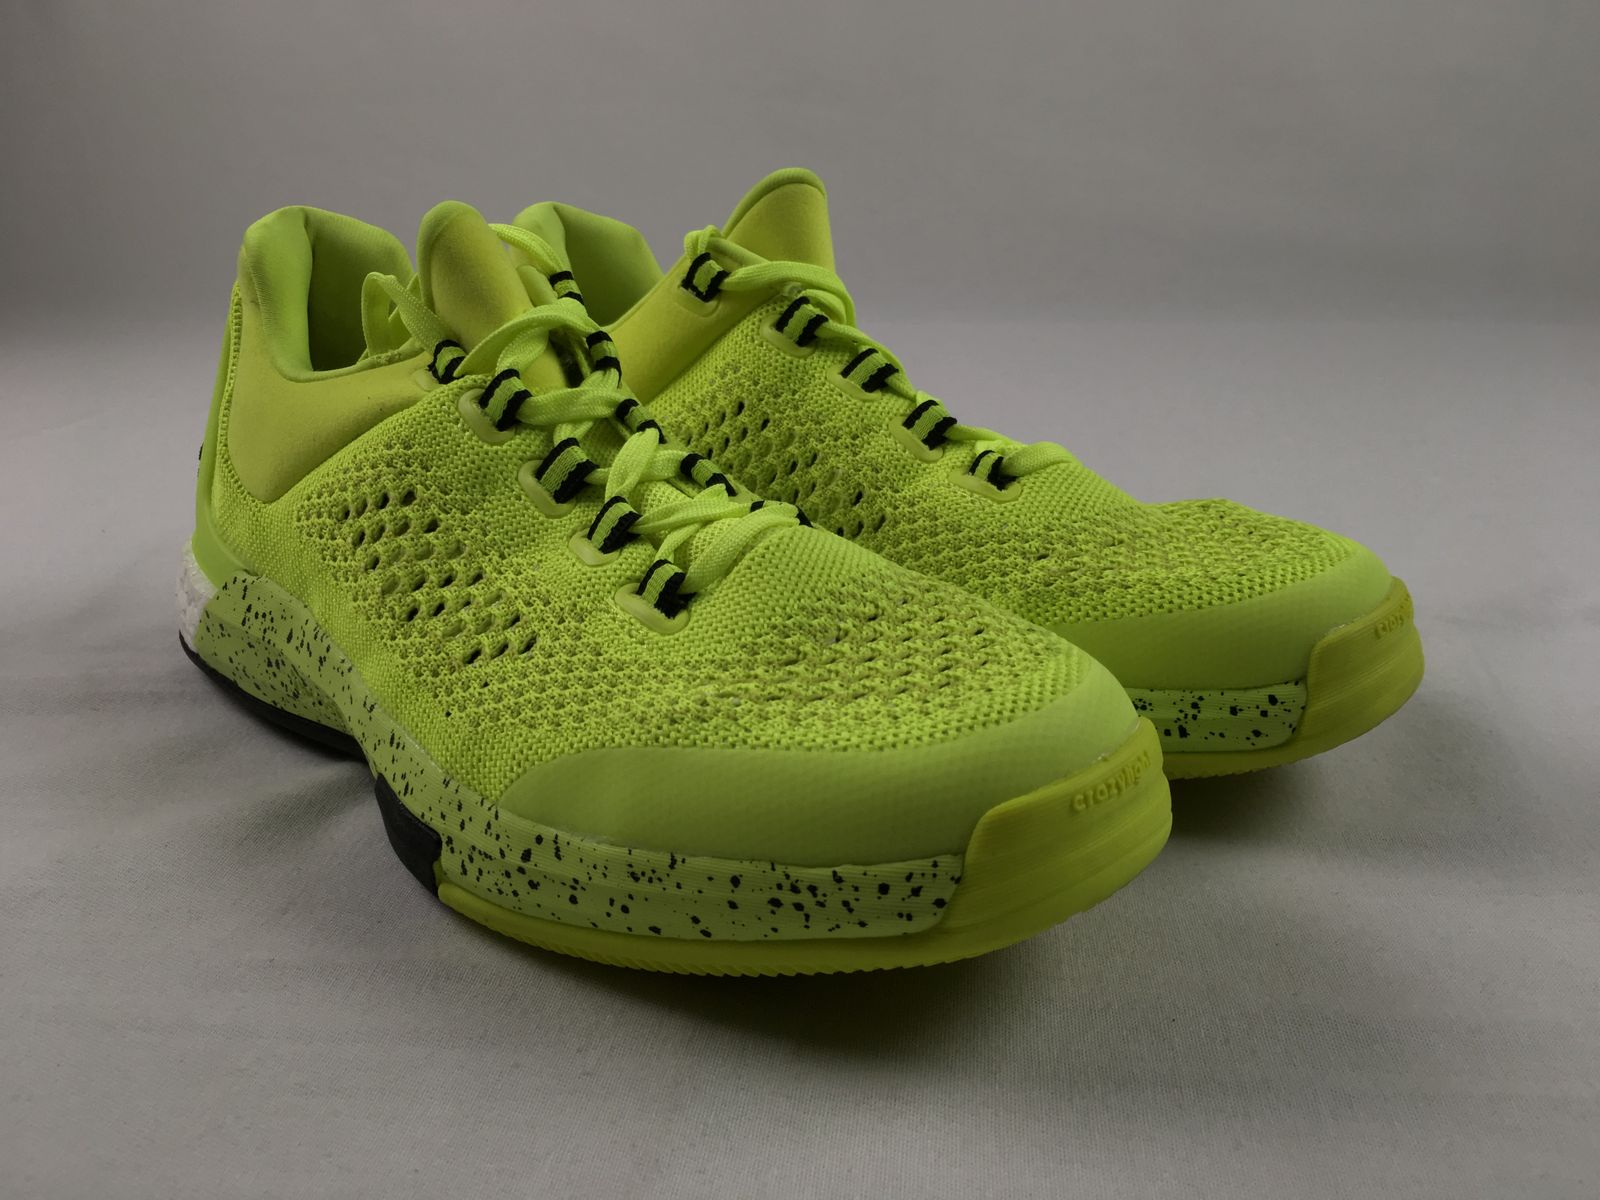 NEW adidas 2018 Crazylight boost - Lime Green Basketball Shoes (Men's 9.5)